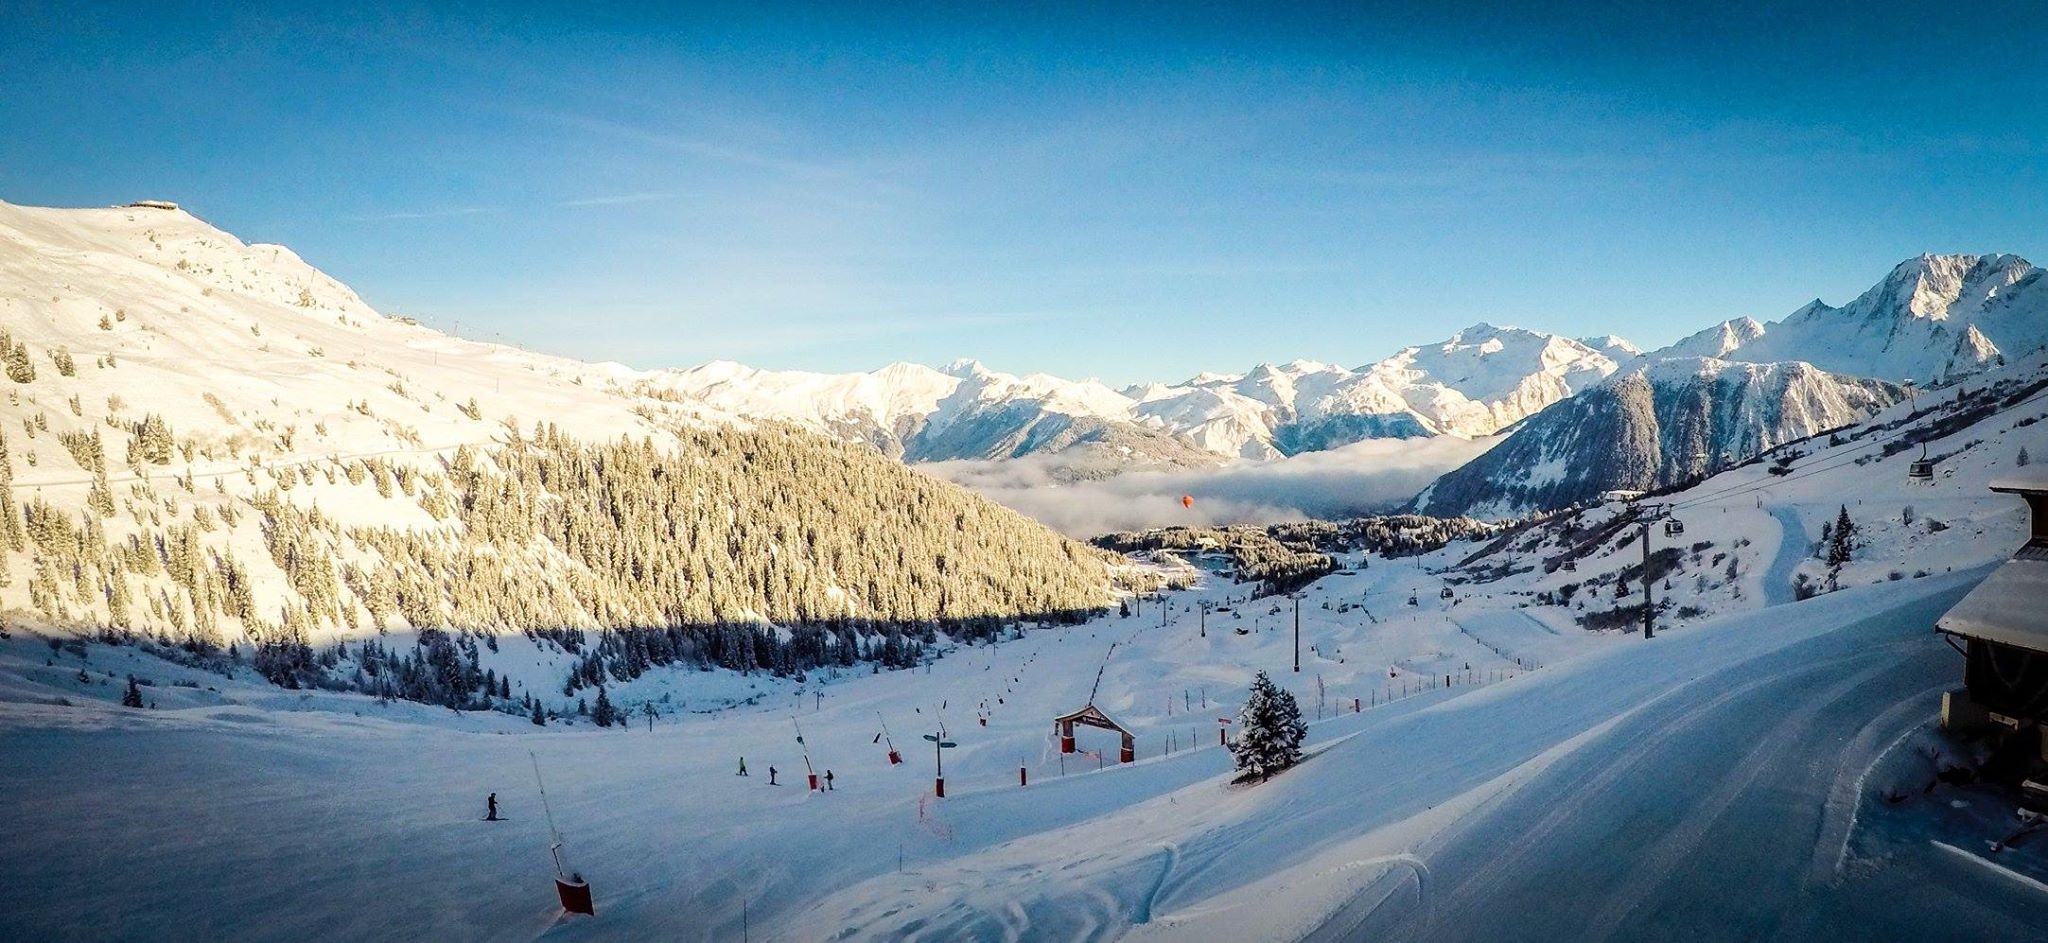 La Tania Lift passes prices 2019 – 2020